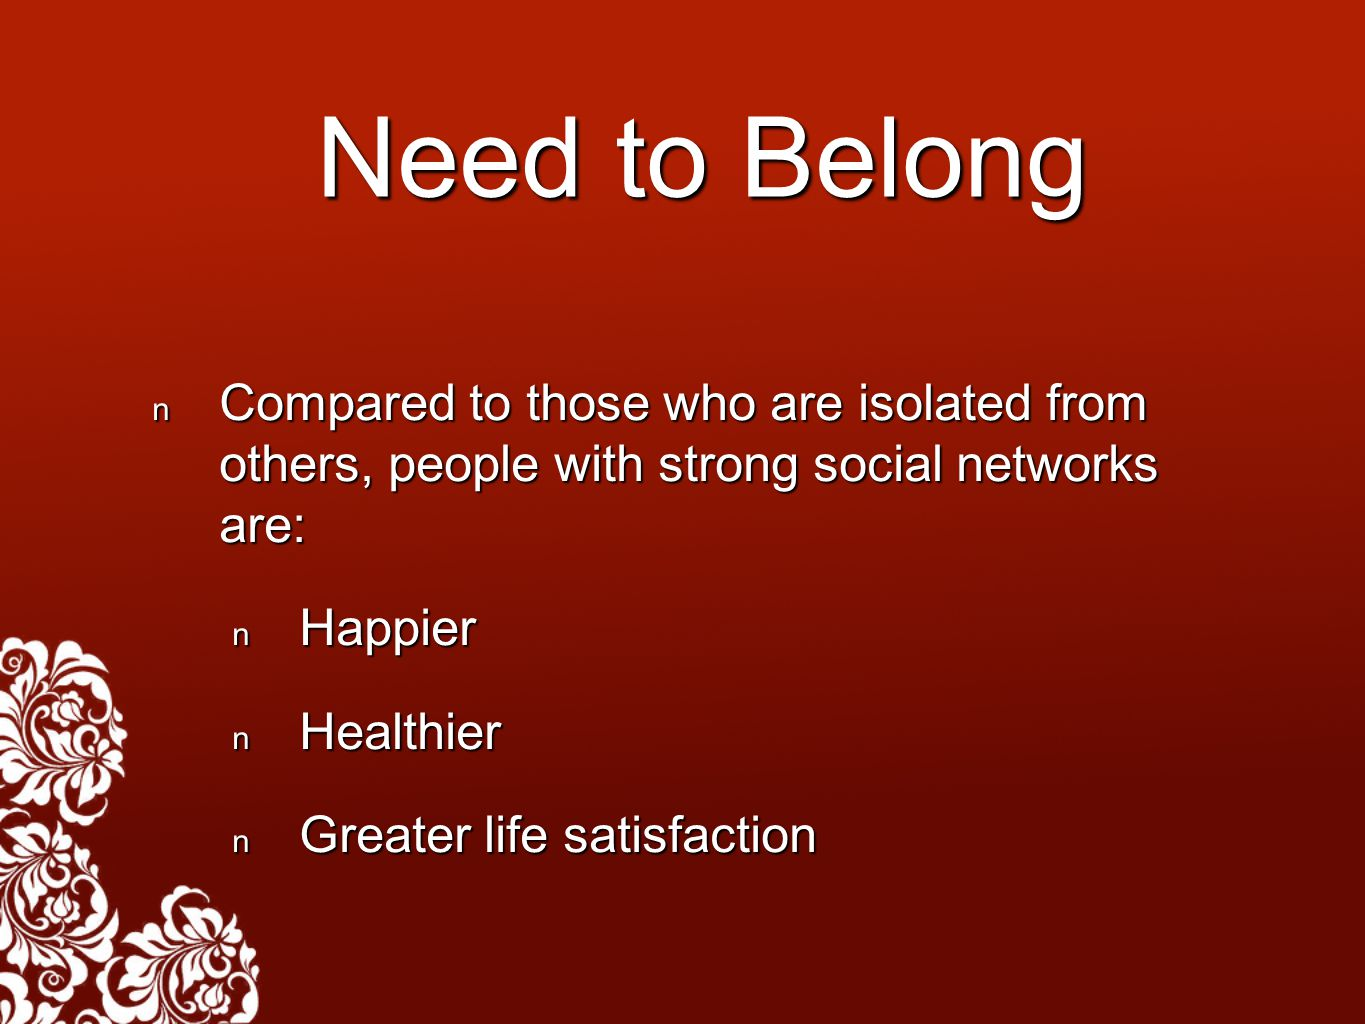 Need to Belong Compared to those who are isolated from others, people with strong social networks are: Compared to those who are isolated from others, people with strong social networks are: Happier Happier Healthier Healthier Greater life satisfaction Greater life satisfaction